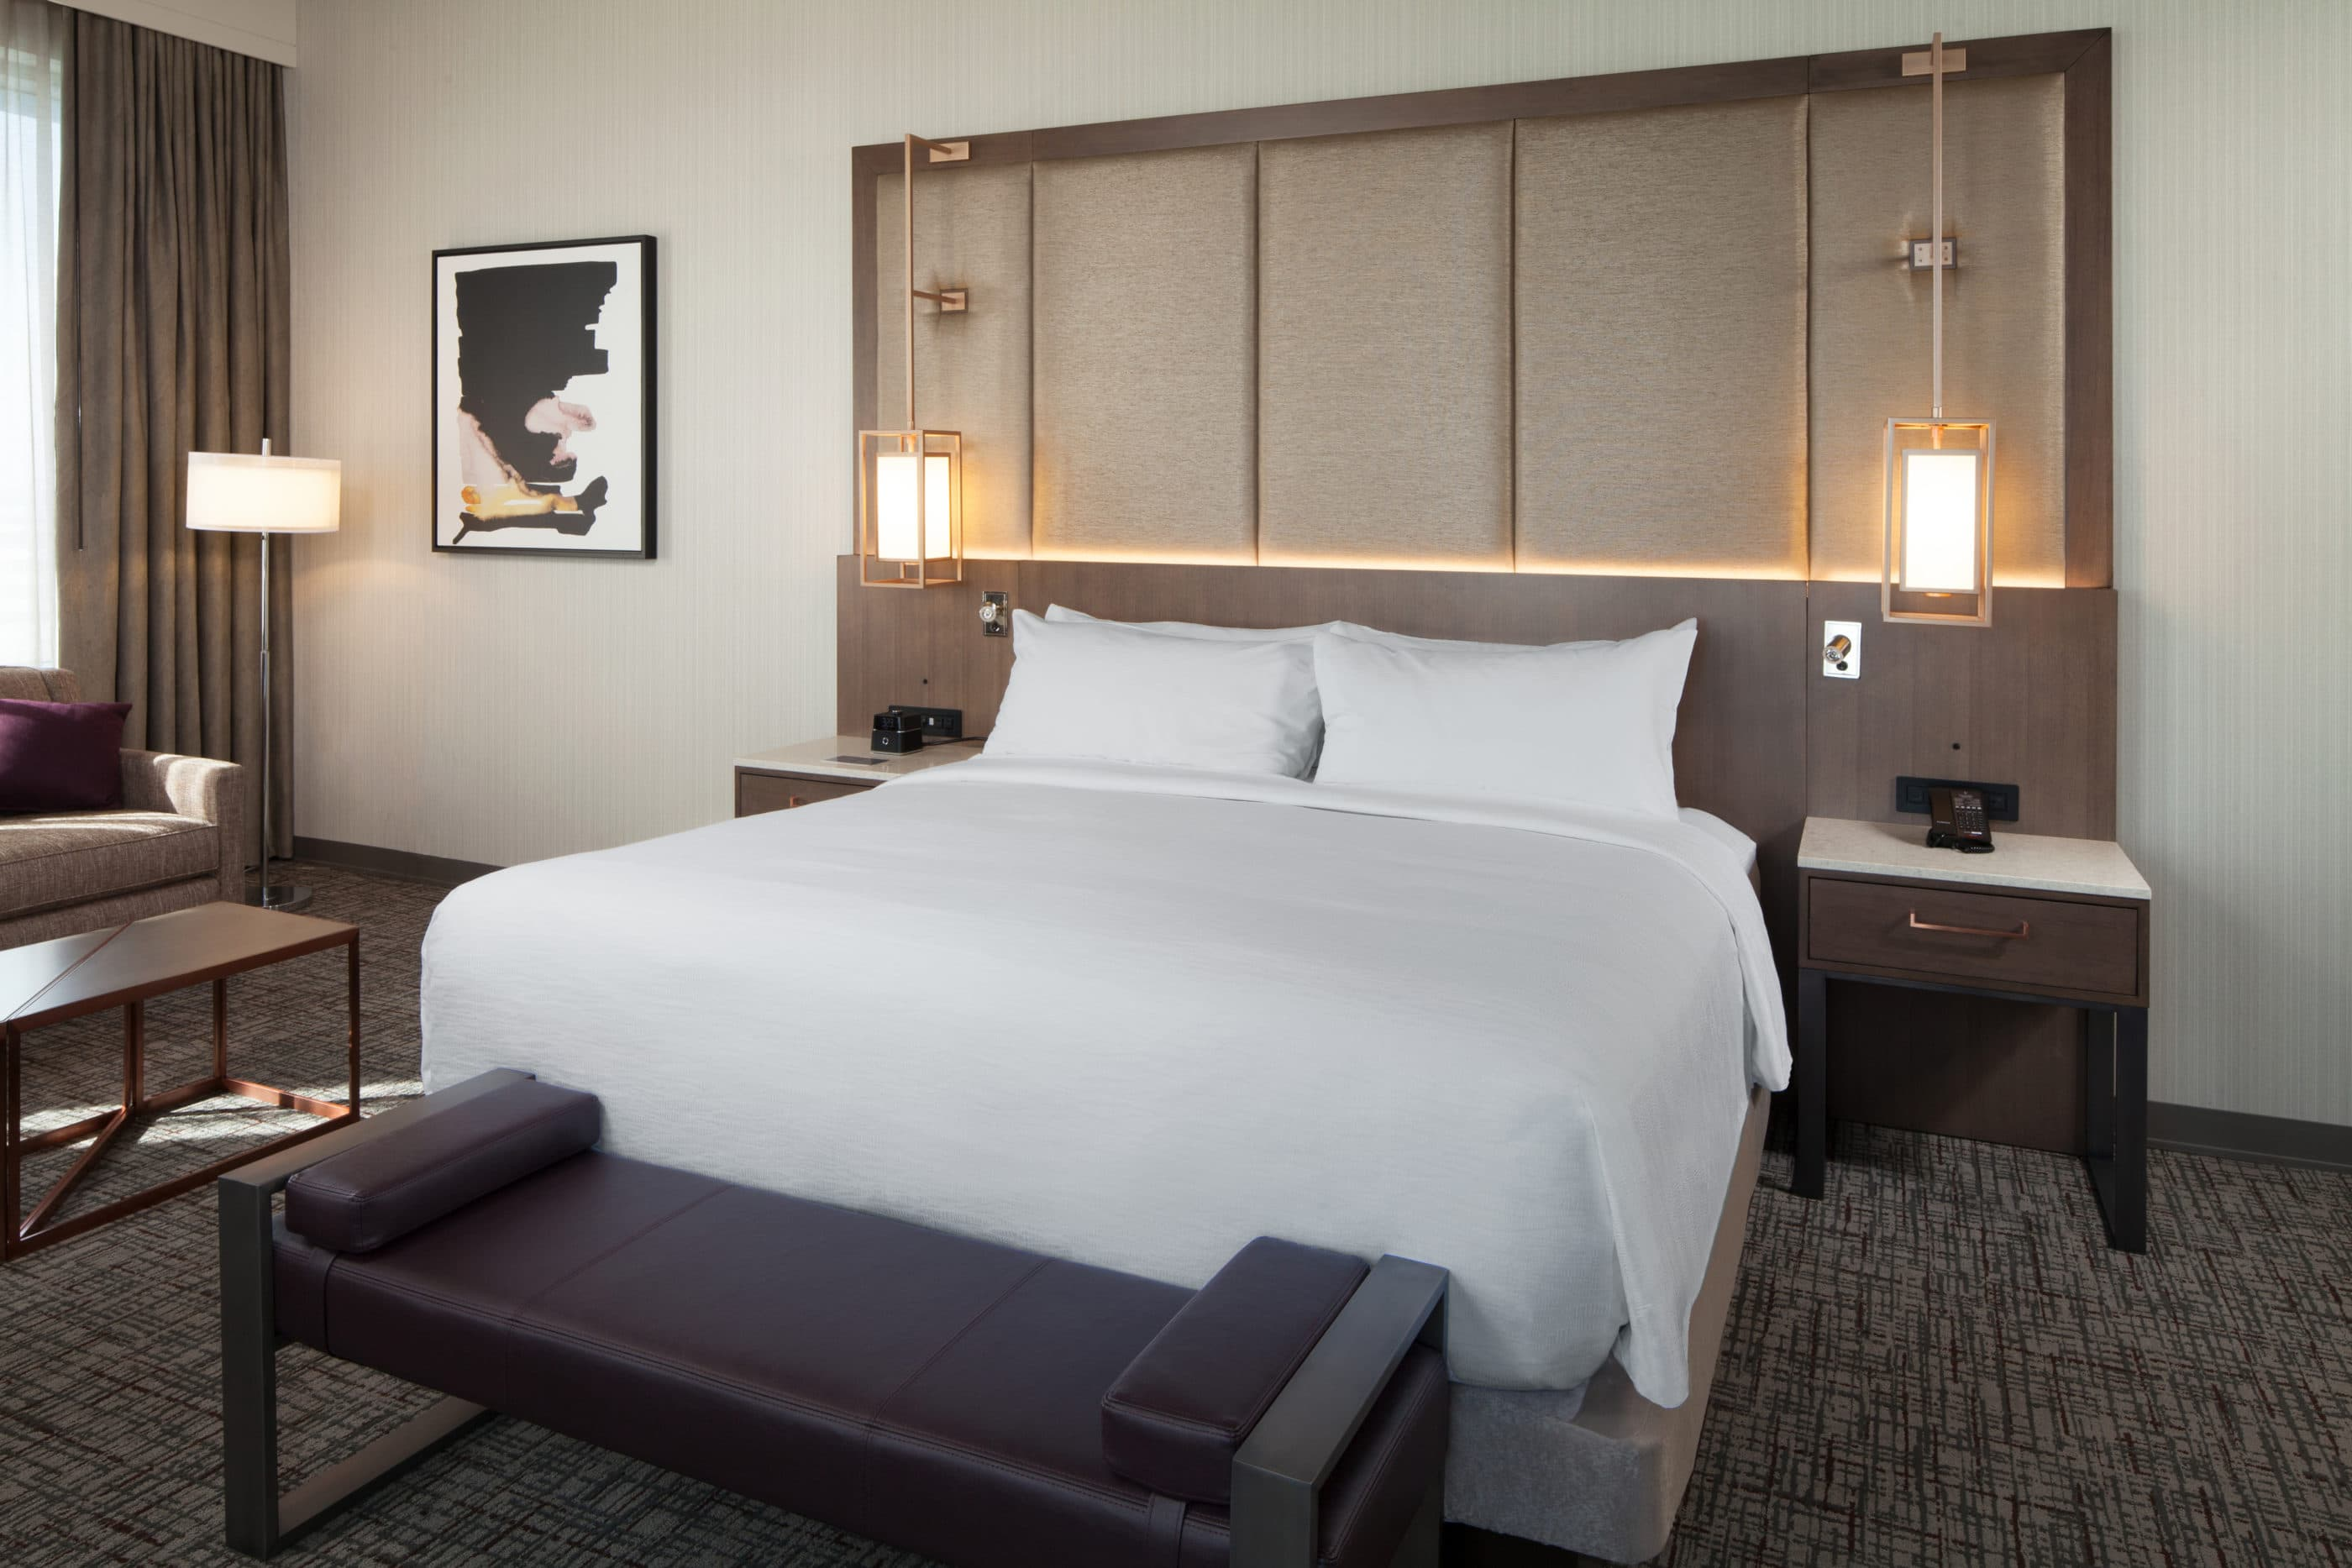 King guestroom at H Hotel in Los Angeles near LAX